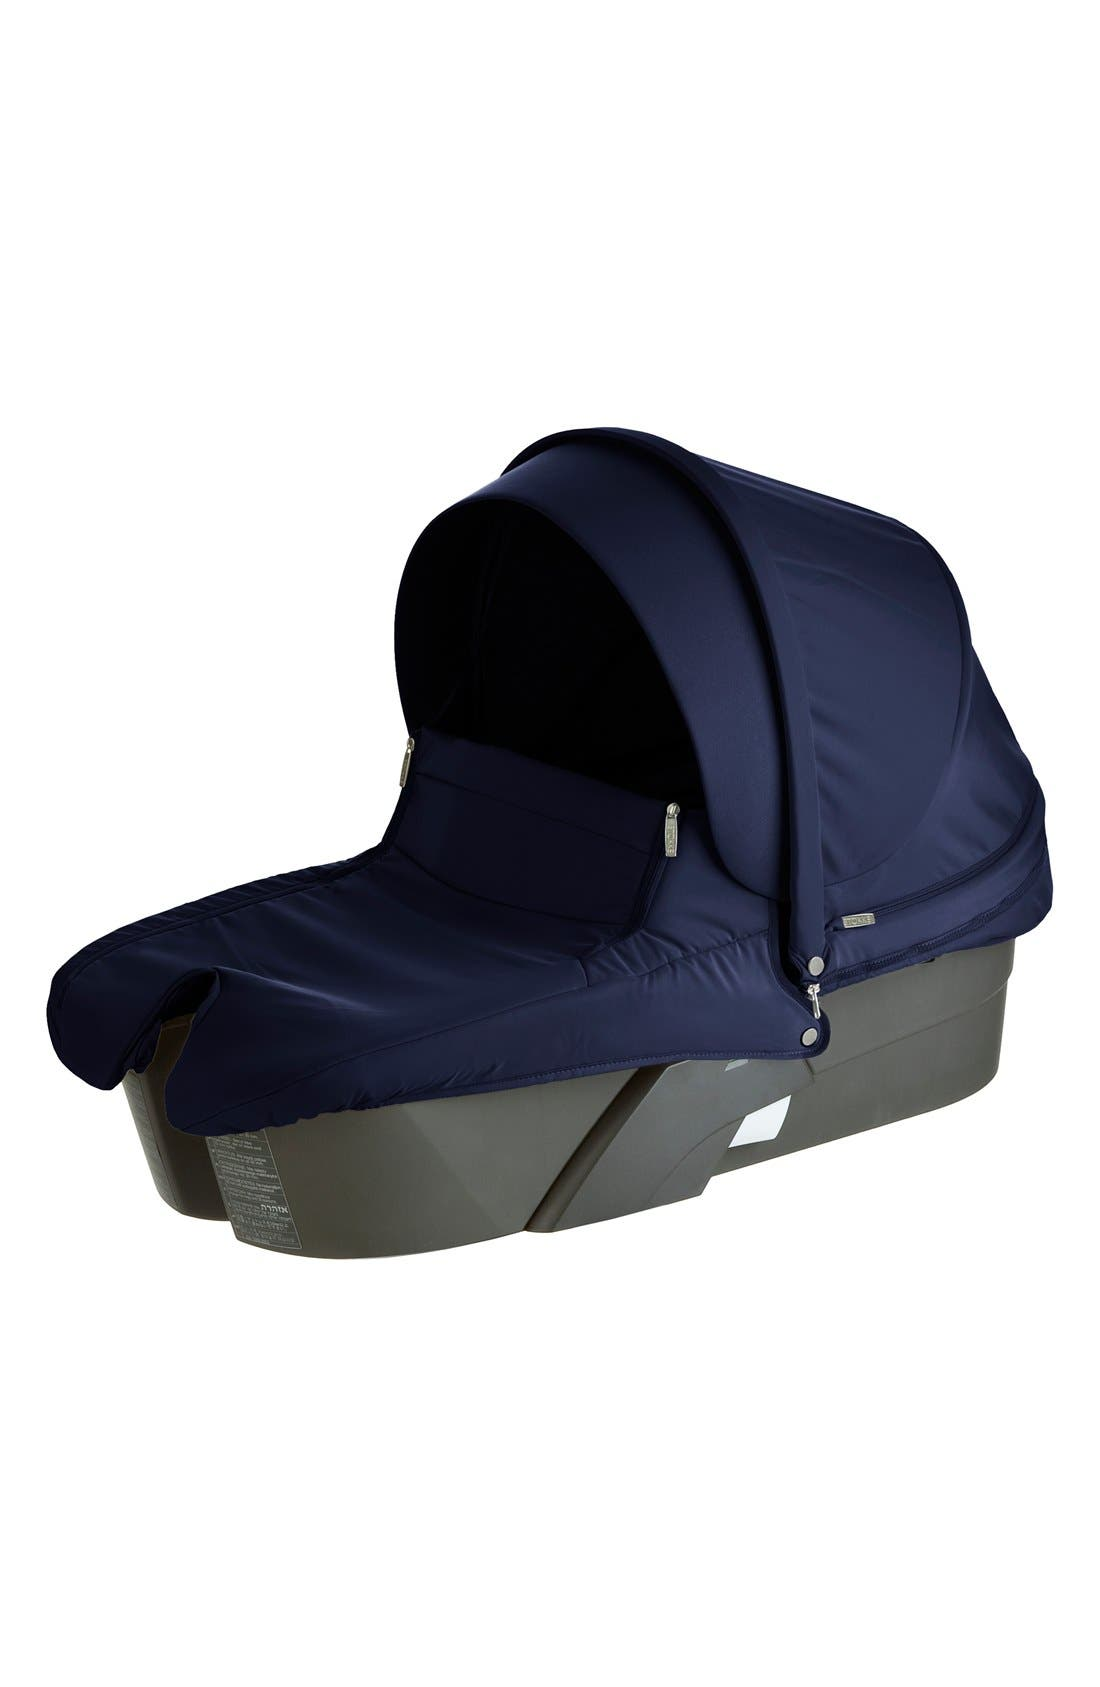 Main Image - Stokke Baby 'Xplory®' Carry Cot